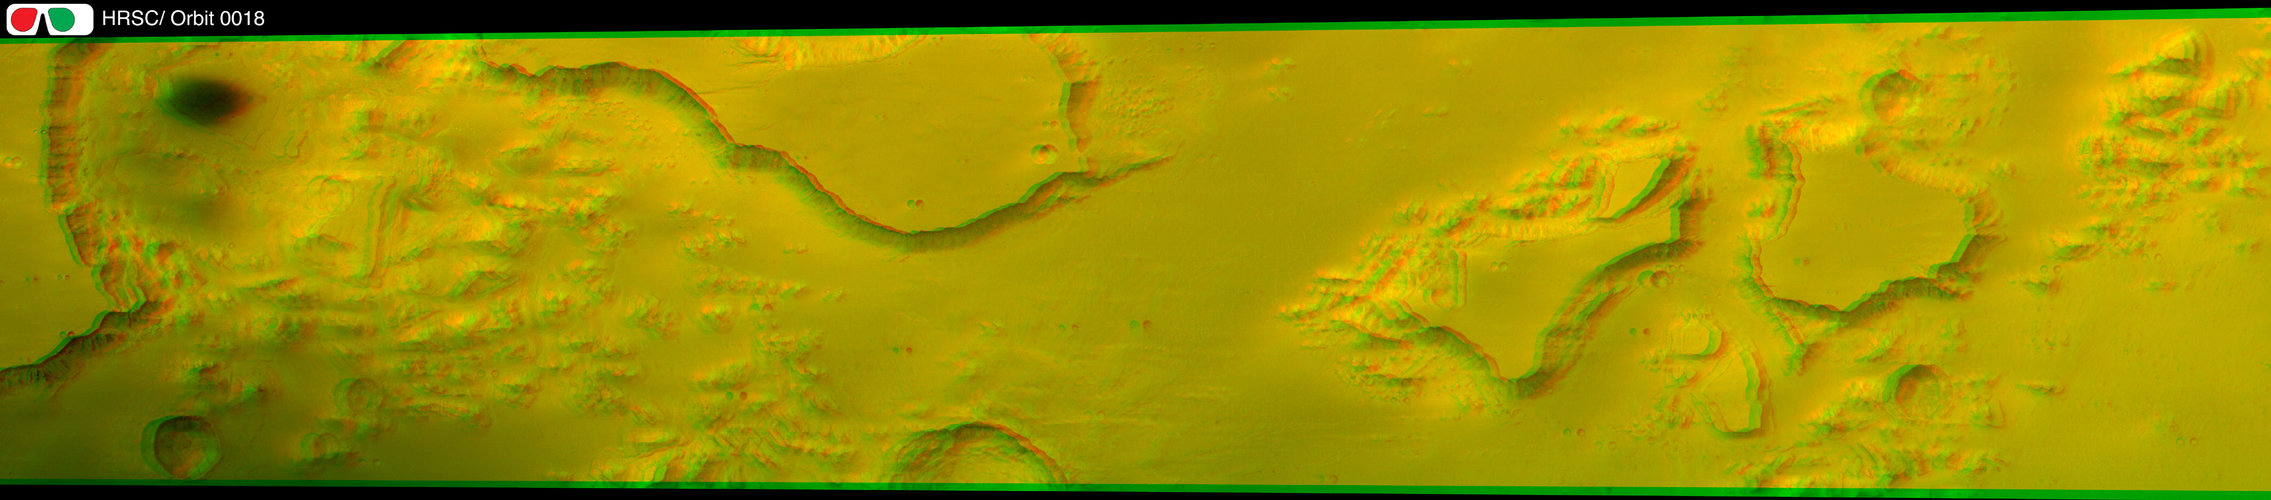 3D image of Valles Marineris taken by Mars Express HRSC